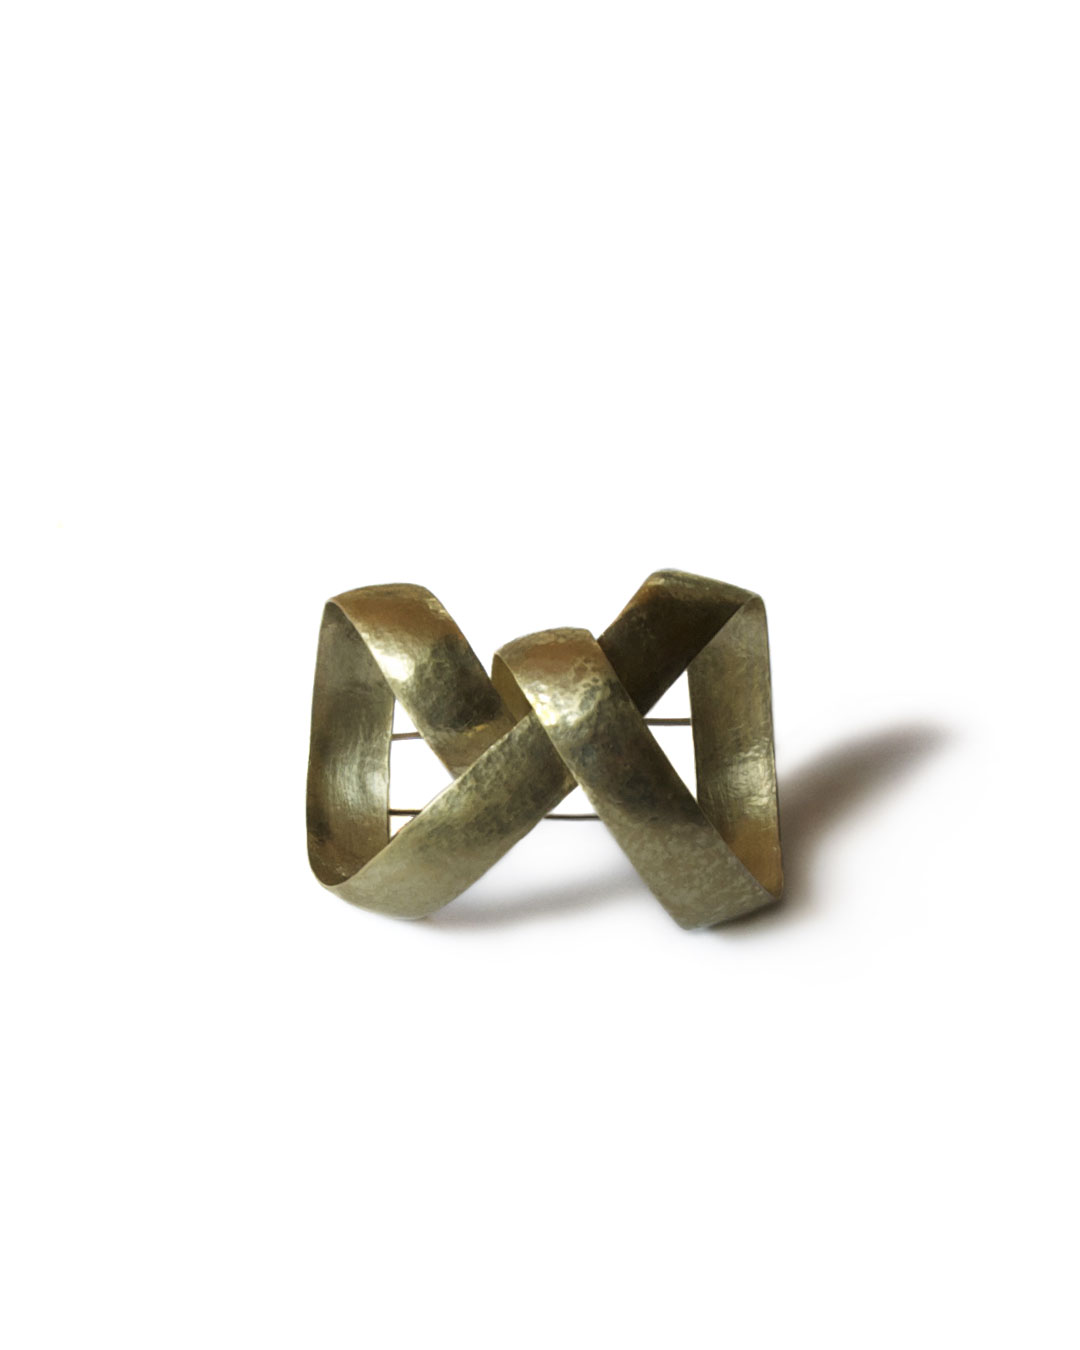 Antje Bräuer, Schleife I (Loop I), 2008, brooch; 14ct gold, steel, 48 x 35 x 32 mm, €2875